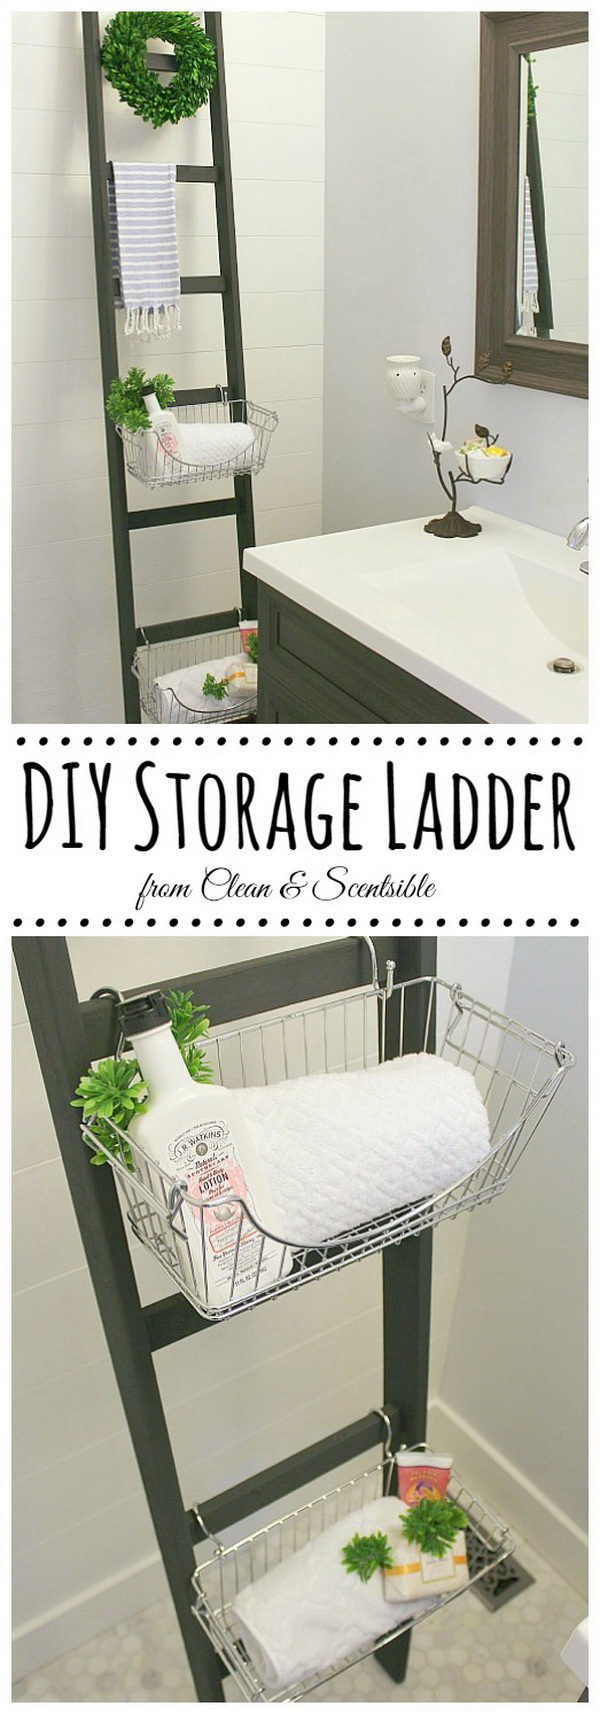 A DIY ladder with wire baskets attached can add some beautiful storage space in your bathroom.